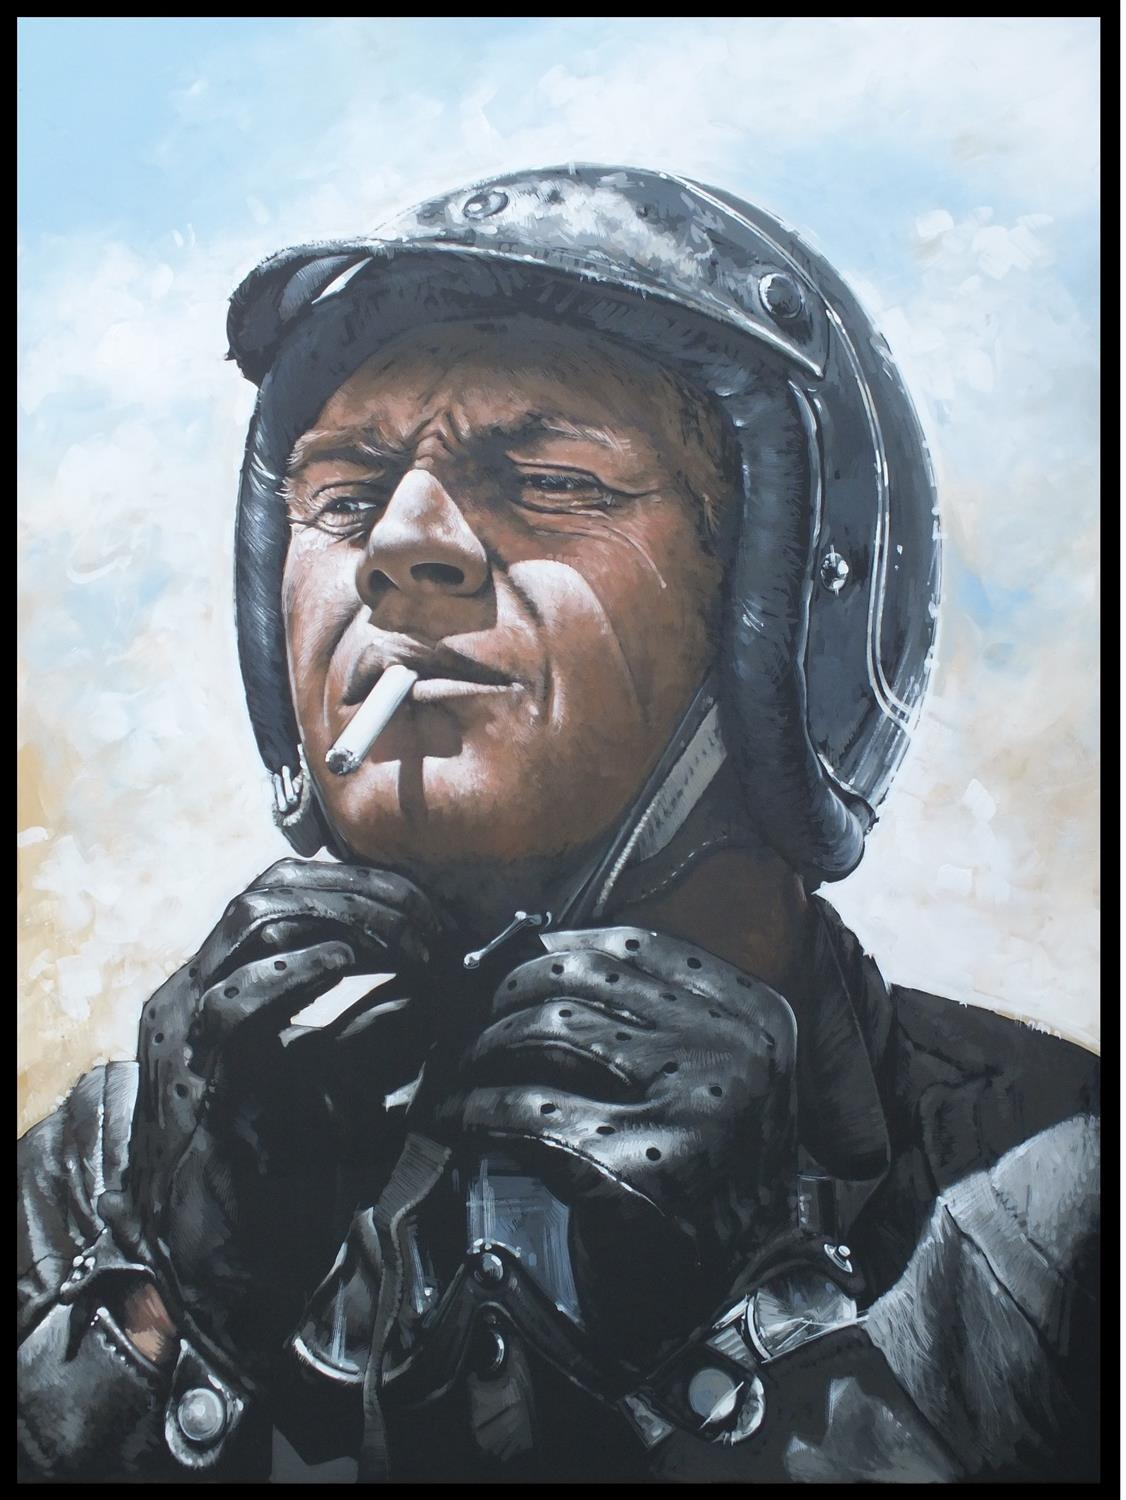 King of Cool - Steve McQueen - Original Acrylic on Board Painting by Tony Upson